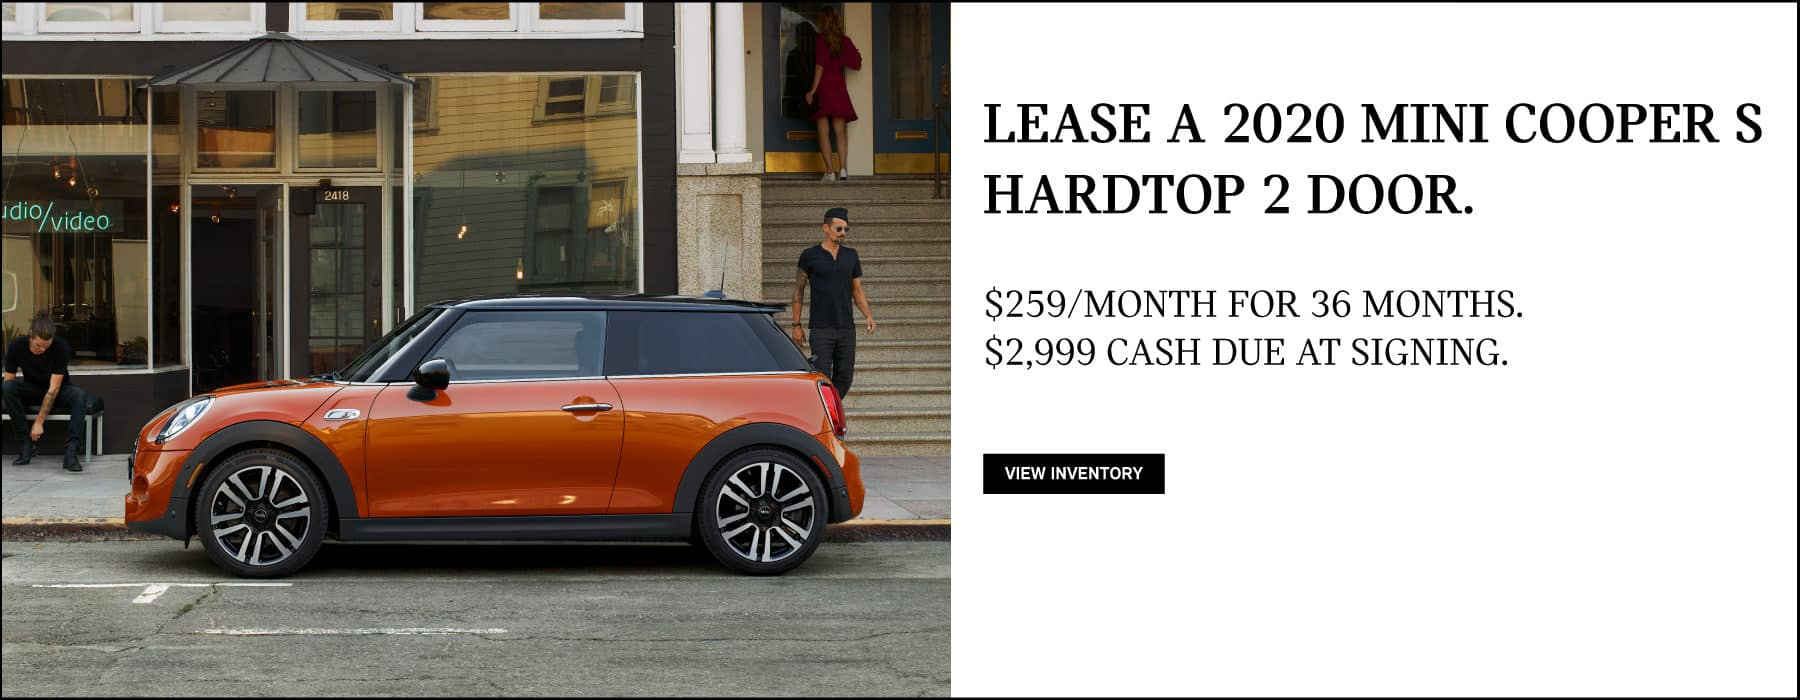 Lease a 2020 MINI Cooper S Hardtop for $259/mo